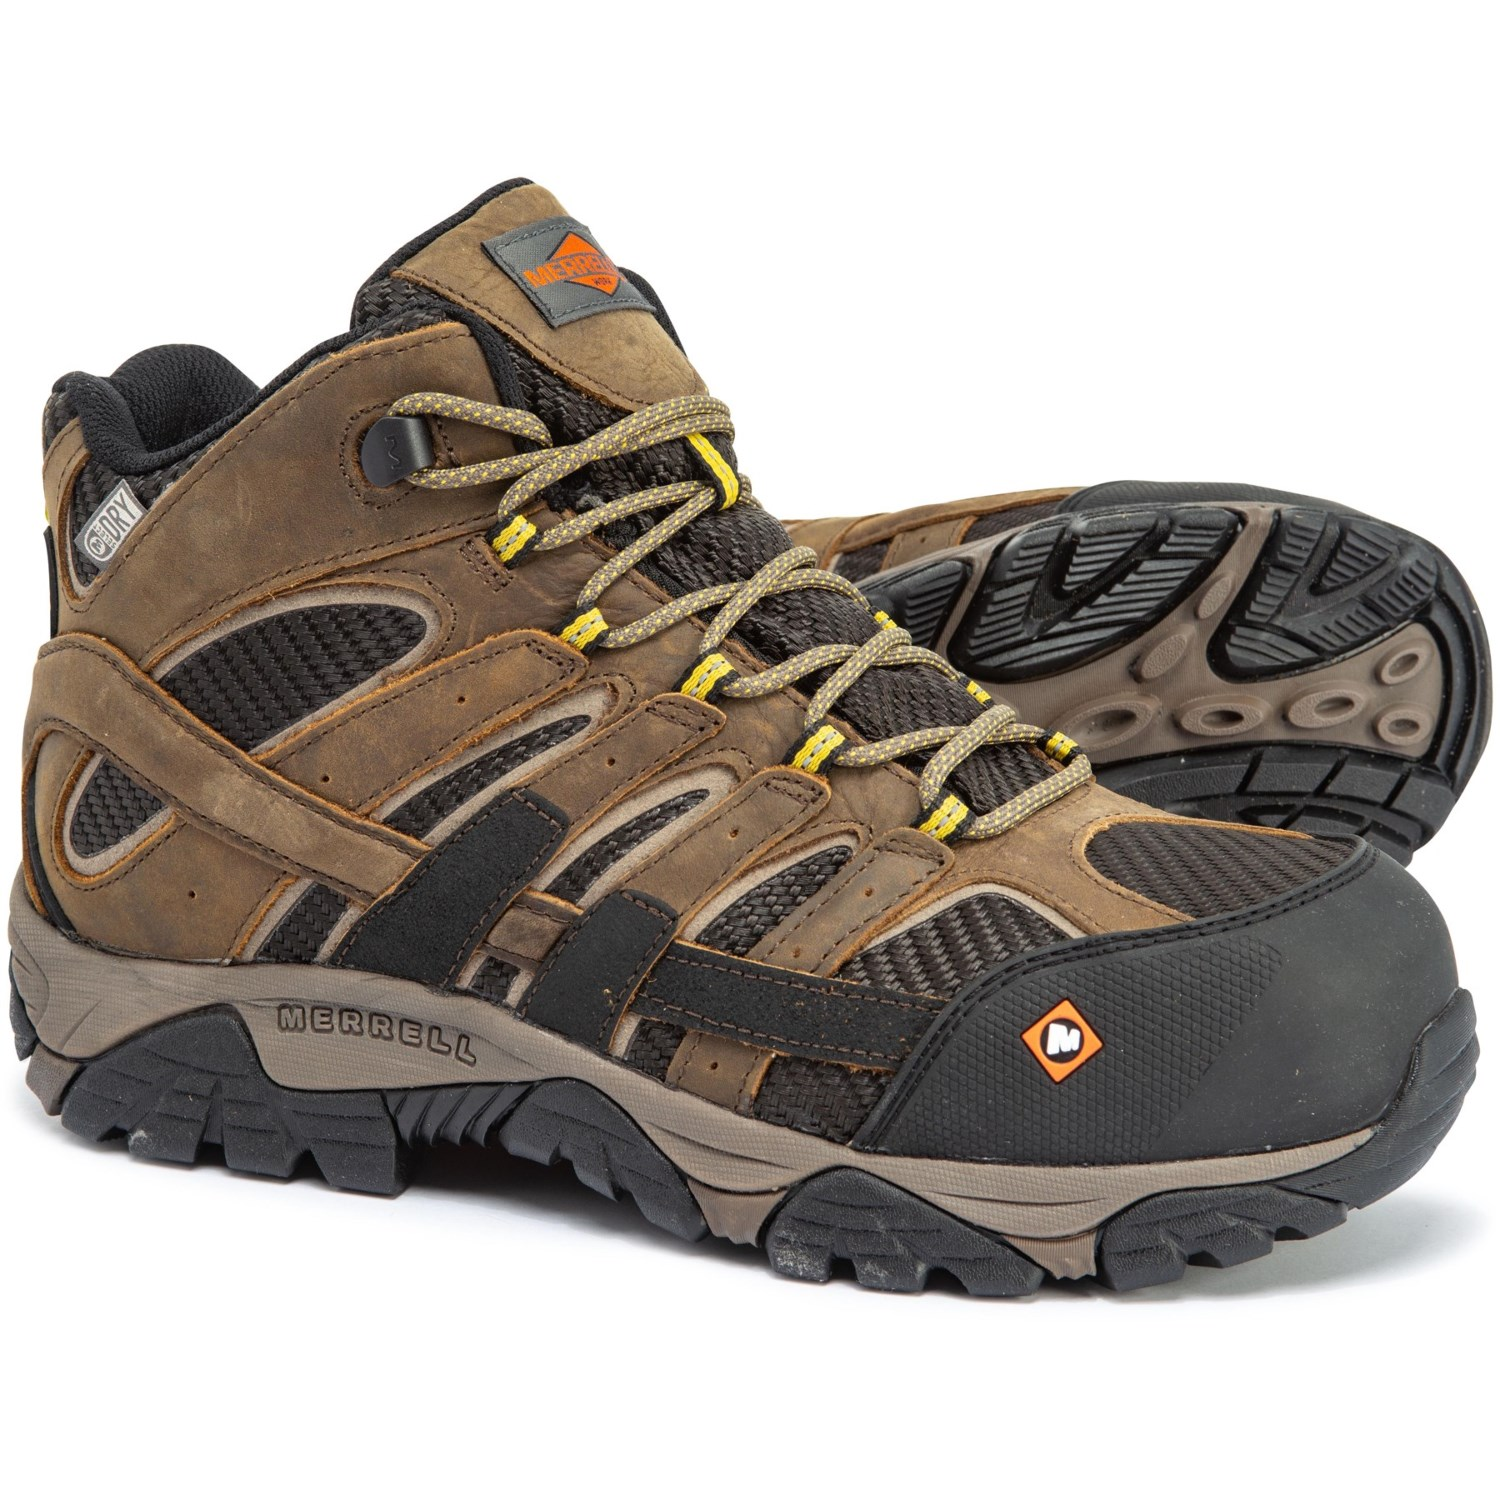 a1ffd358 Merrell Moab 2 Vent Work Boots (For Men) - Save 54%